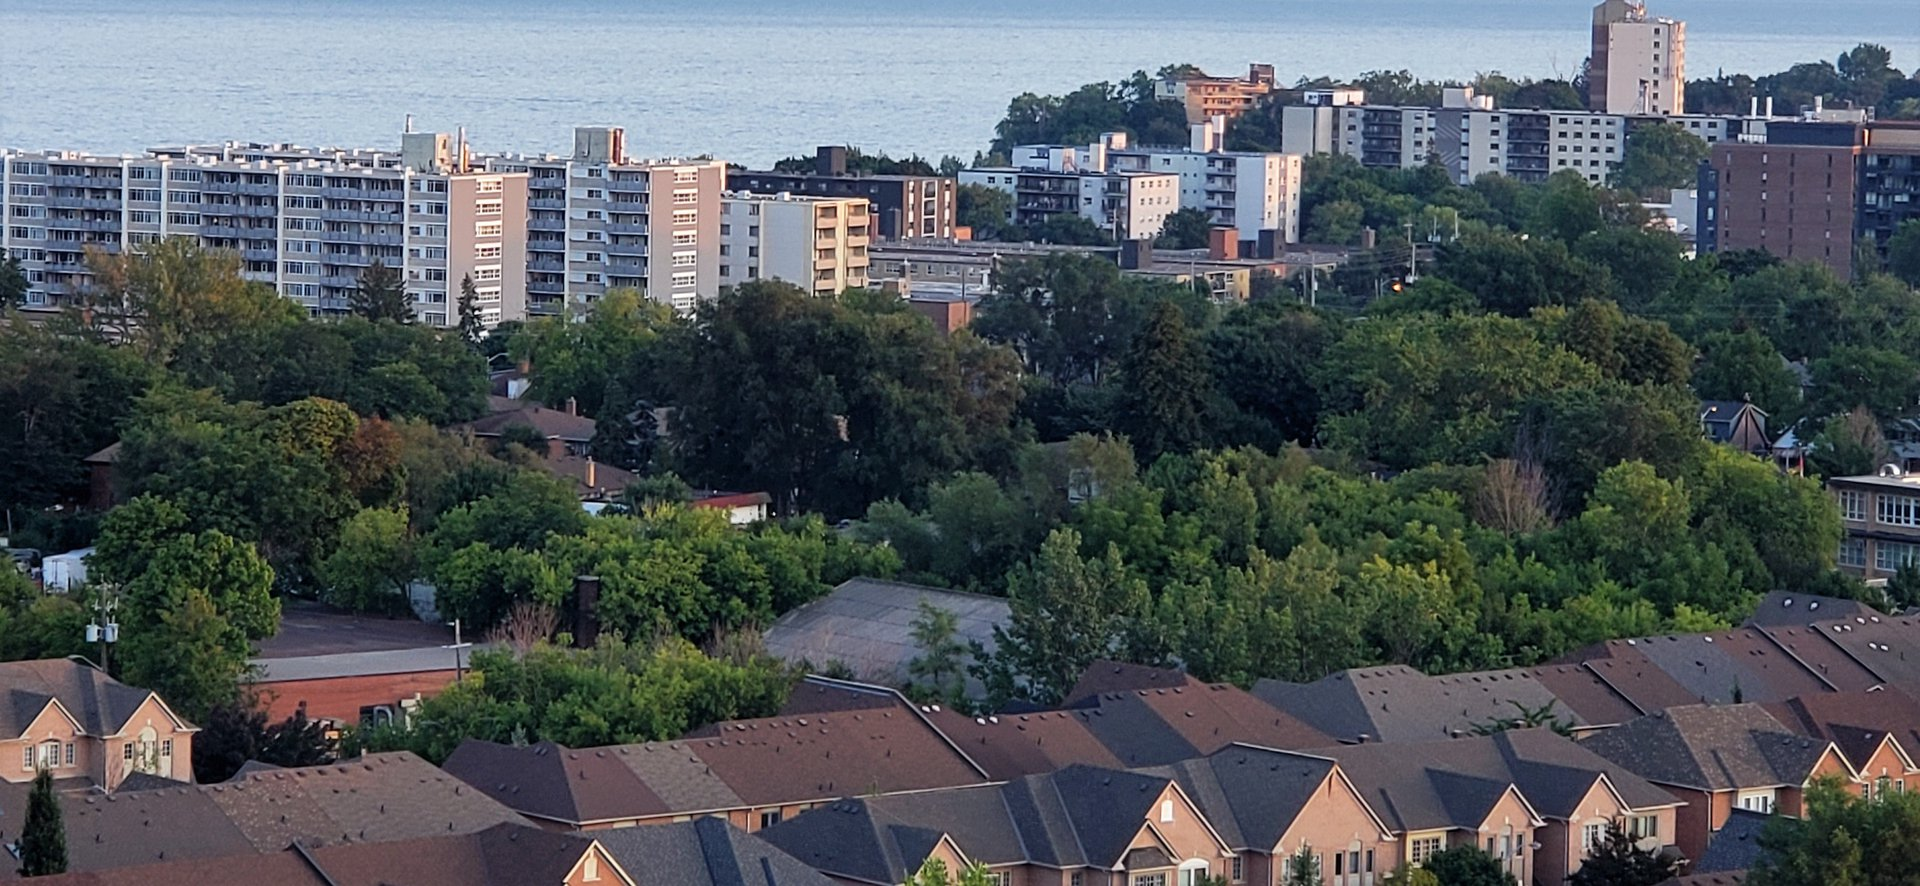 Condo for rent at 155 Legion Rd N, Etobicoke, ON. This is the outdoor building with water view.